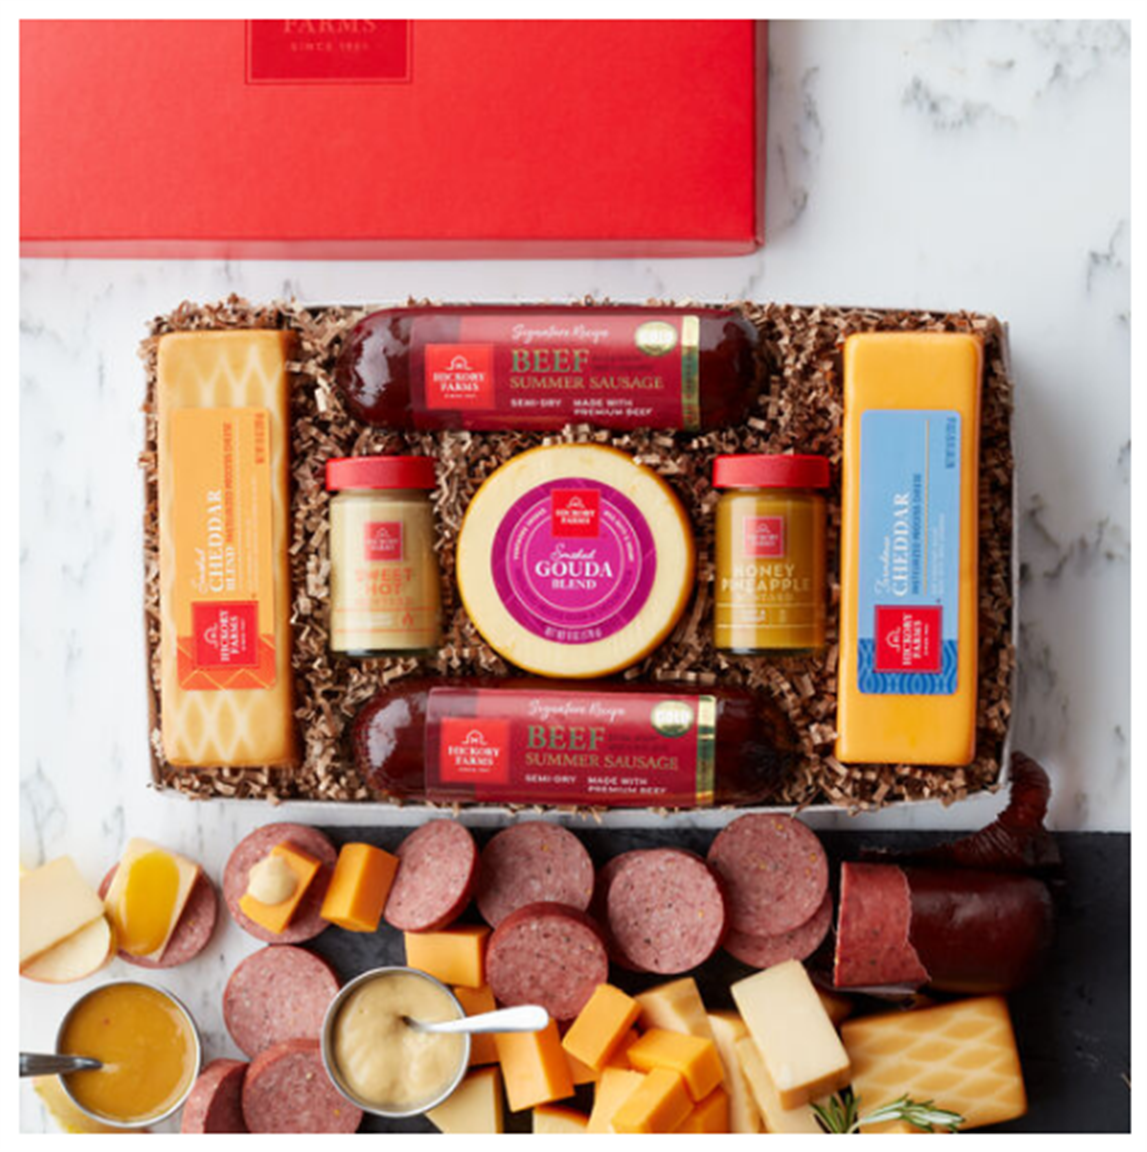 Hickory Farms- Up to 75% Off Final Clearance Food Gifts + Free Shipping To The Military! Summer Sausage & Cheese Gift Box Only $13.50, Reg $45.00!